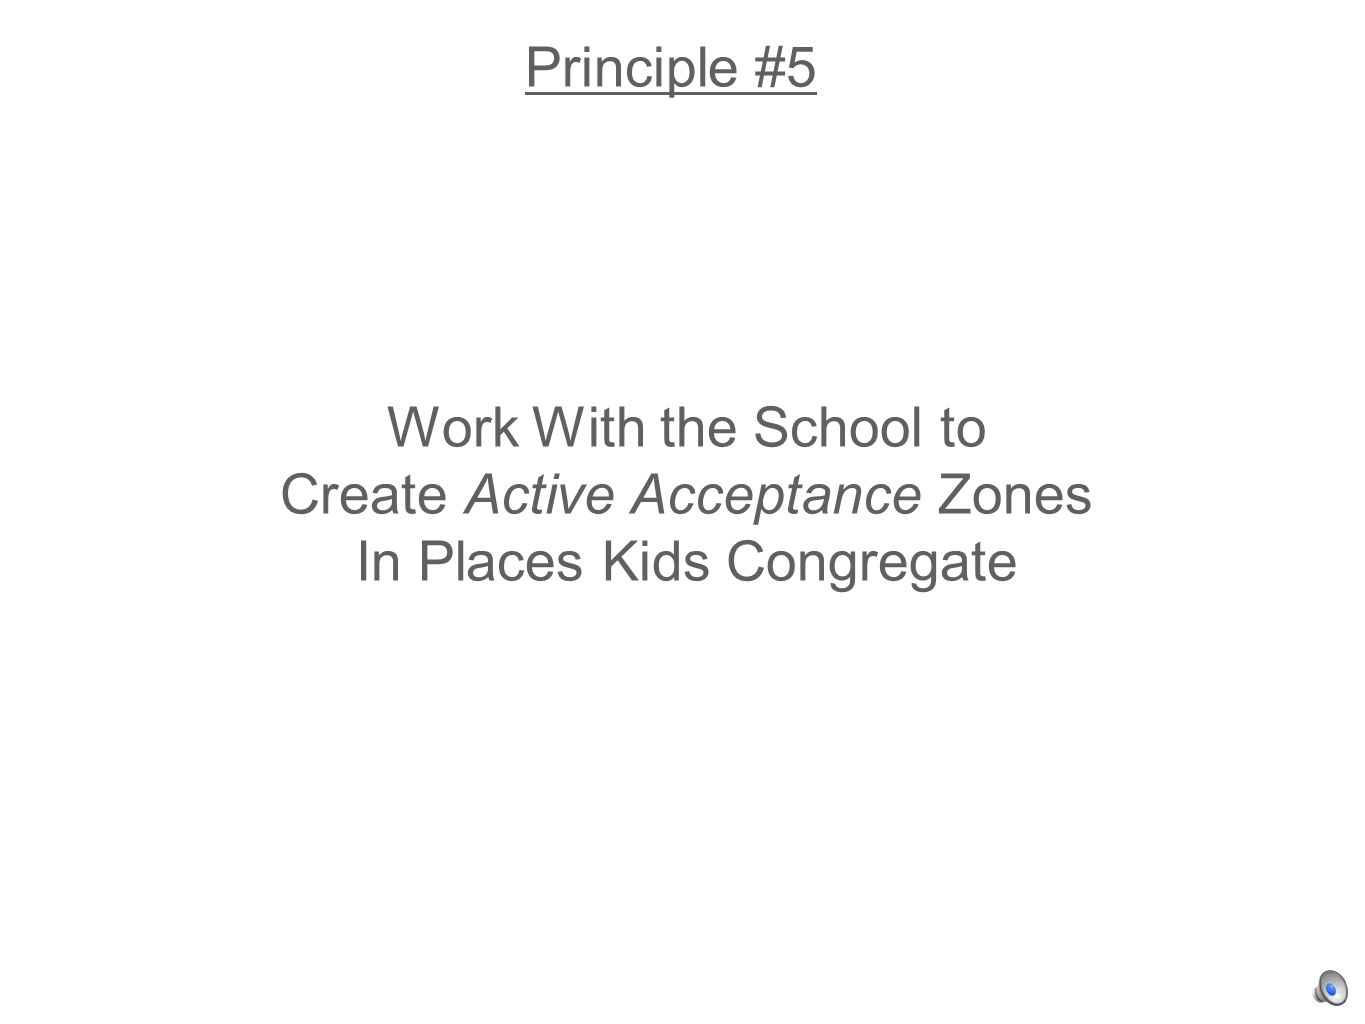 Principle #5 Work With the School to Create Active Acceptance Zones In Places Kids Congregate